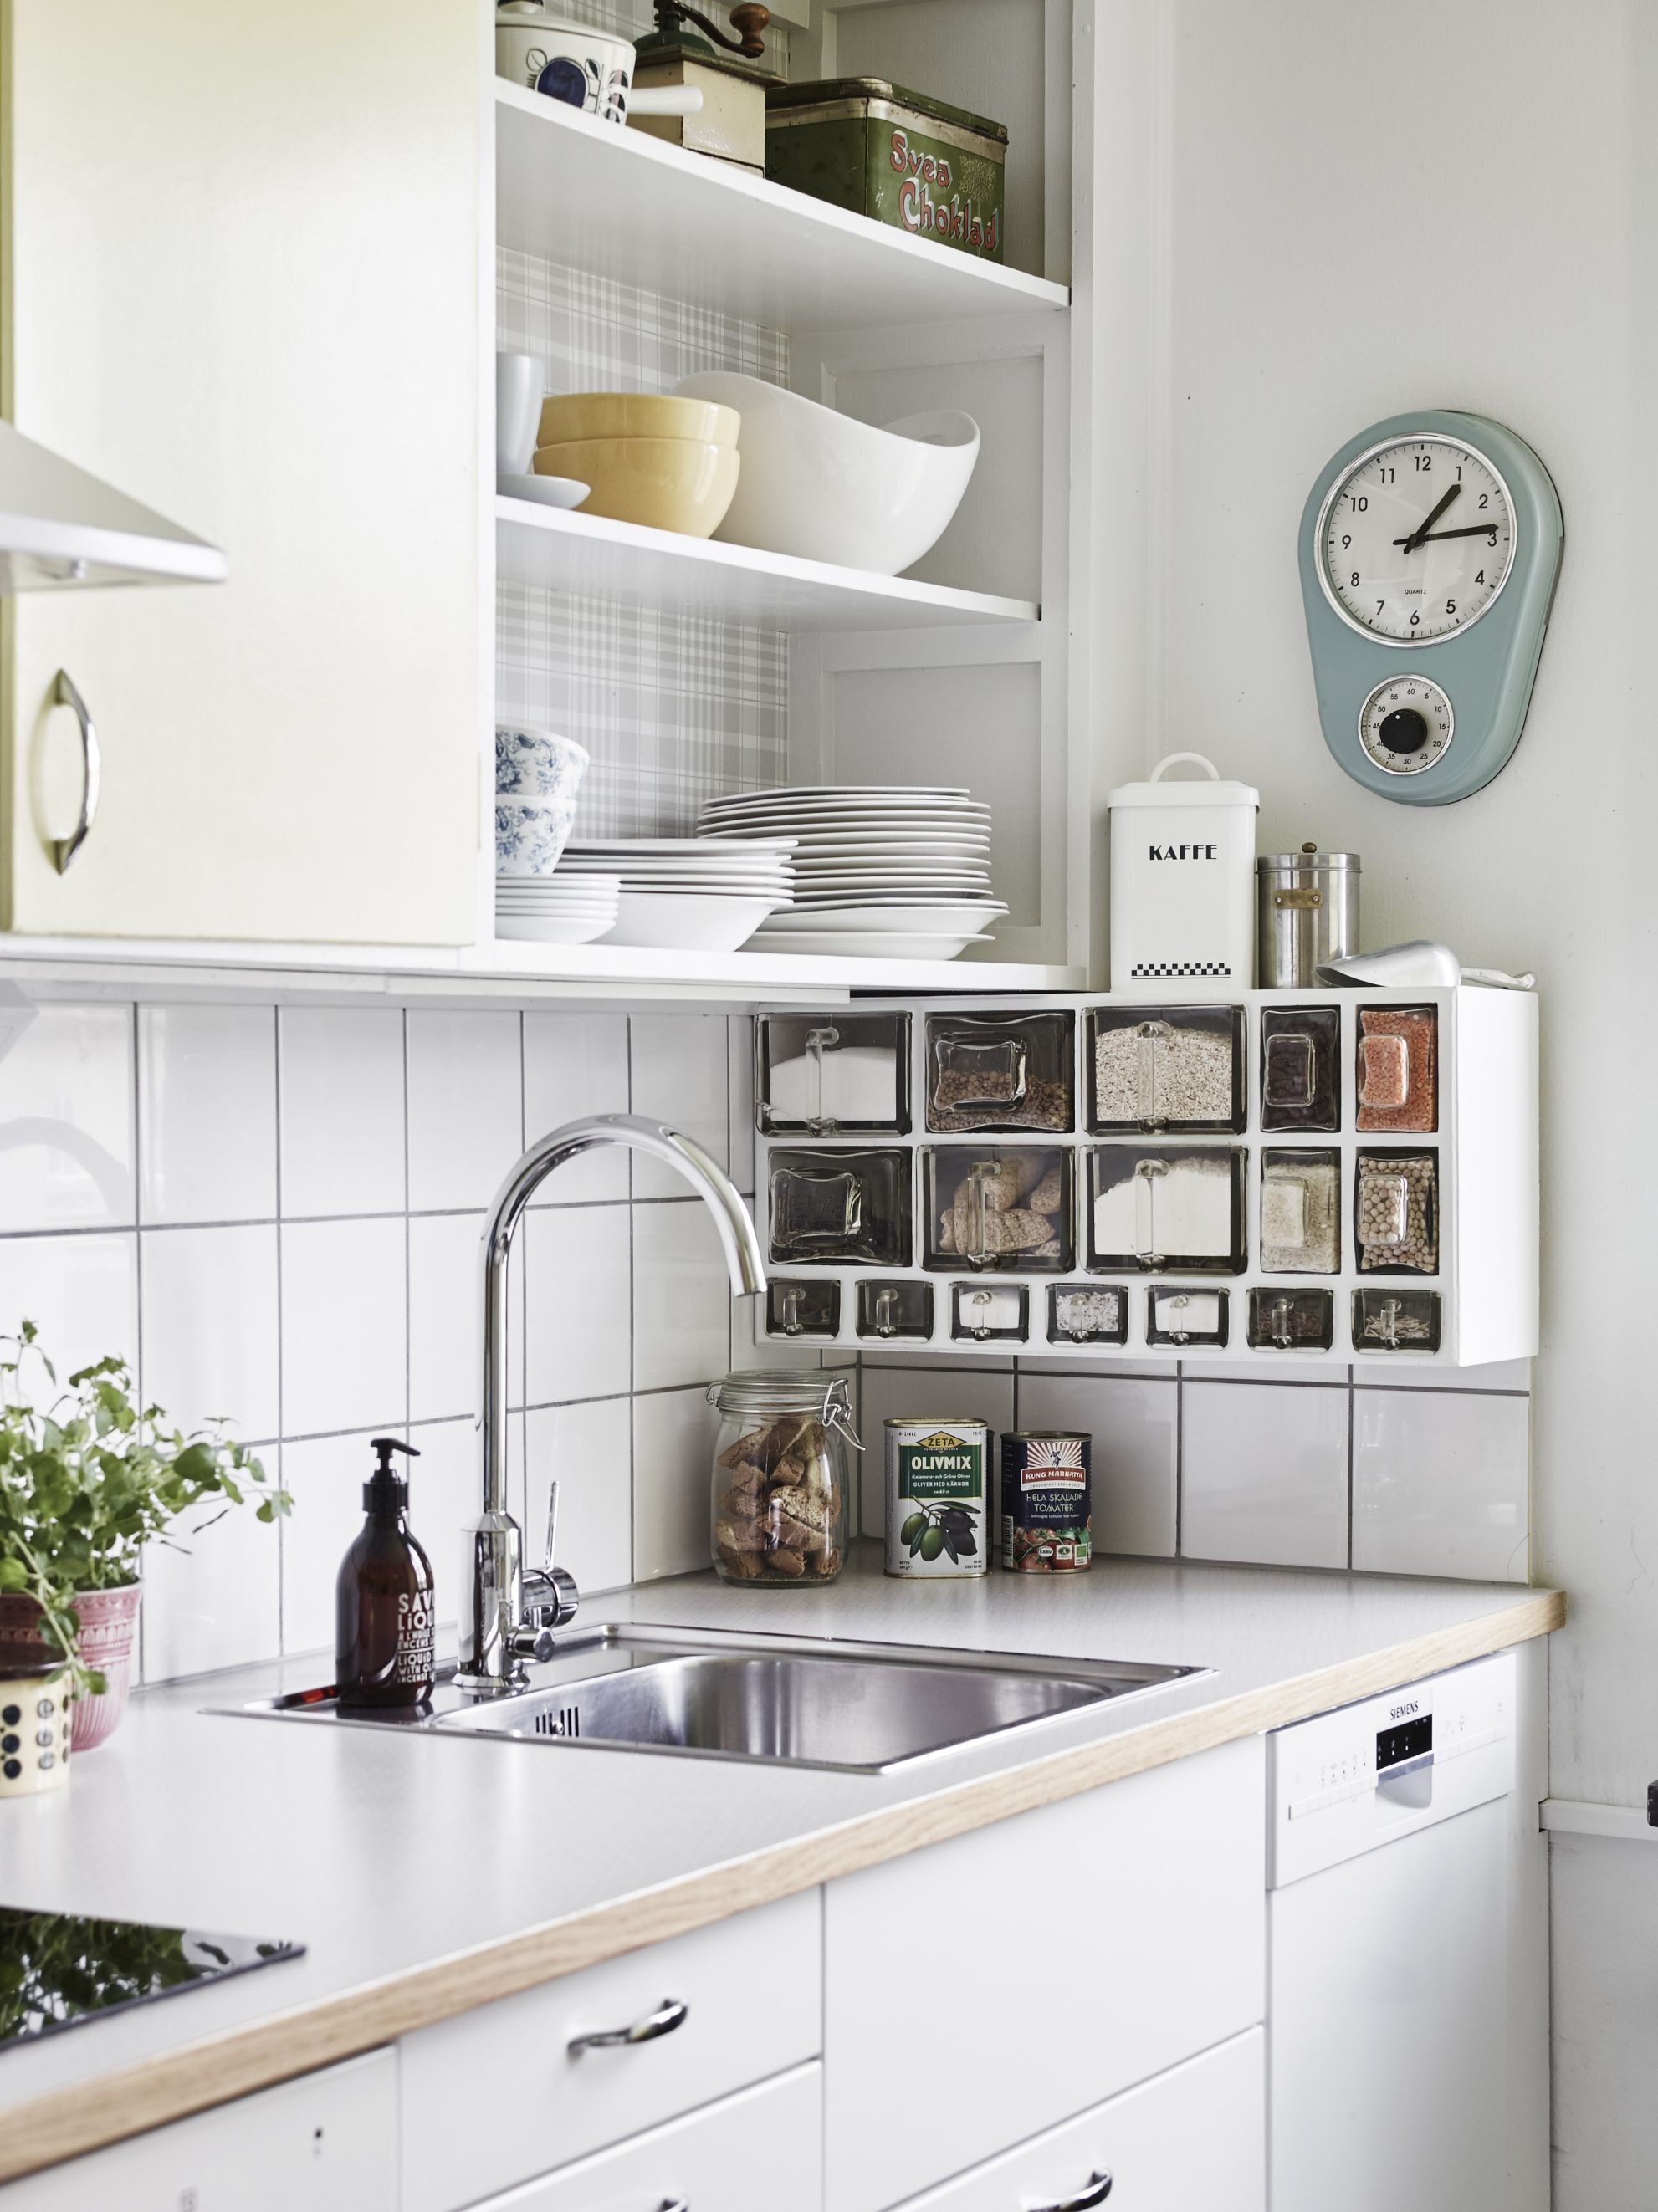 Love this brilliant way to mix an original builtin kitchen upper